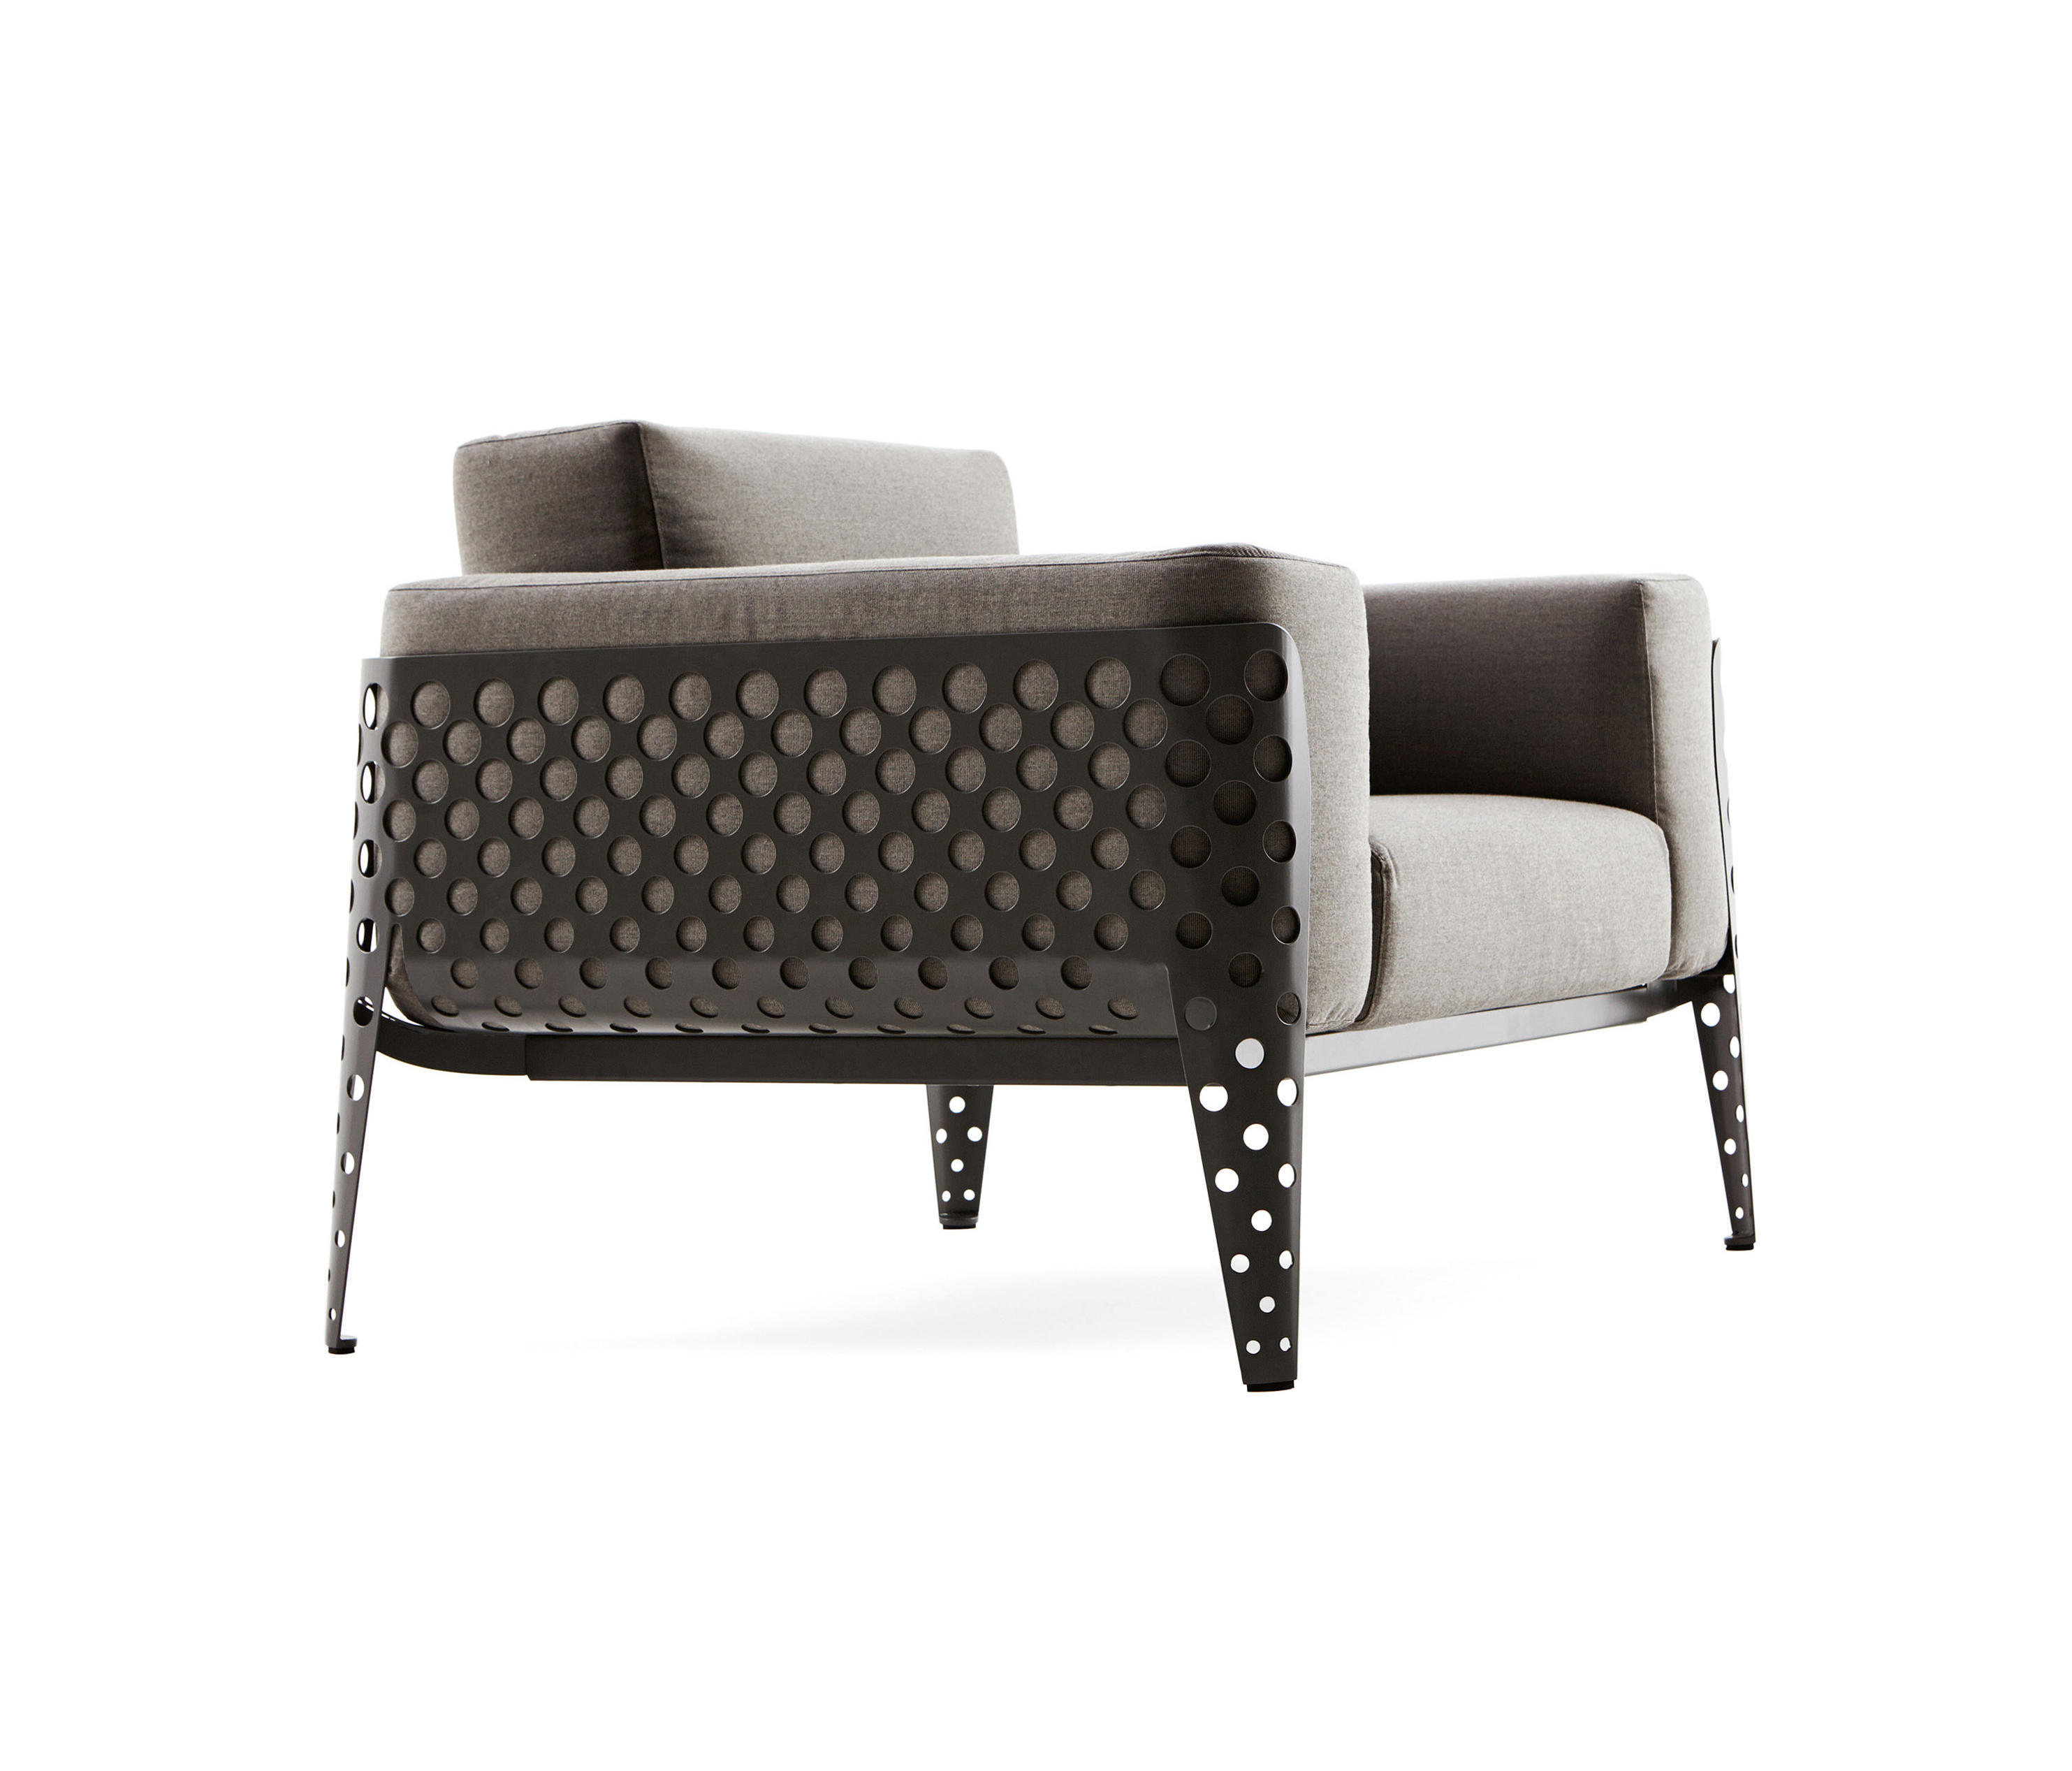 pois lounge chair - garden armchairs from varaschin | architonic, Hause deko